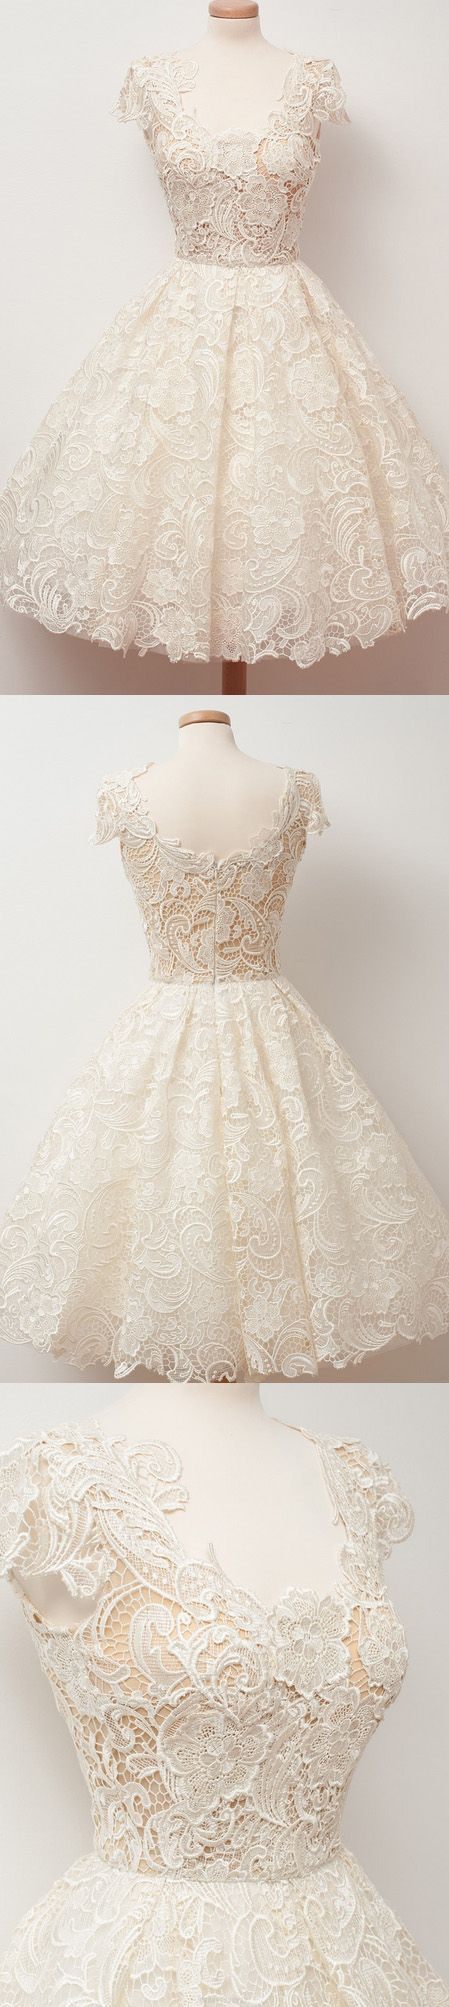 Short Prom Dresses, Lace Prom Dresses, Sexy Prom dresses, Prom Dresses Short, Cap Sleeve Prom dresses, Lace Homecoming Dresses, Sexy Homecoming Dresses, Prom Short Dresses, Short Homecoming Dresses, Sexy Lace Dresses, Sexy Party Dresses, Ivory Homecoming Dresses, Cap Sleeve Prom Dresses, Lace Party Dresses, Mini Homecoming Dresses